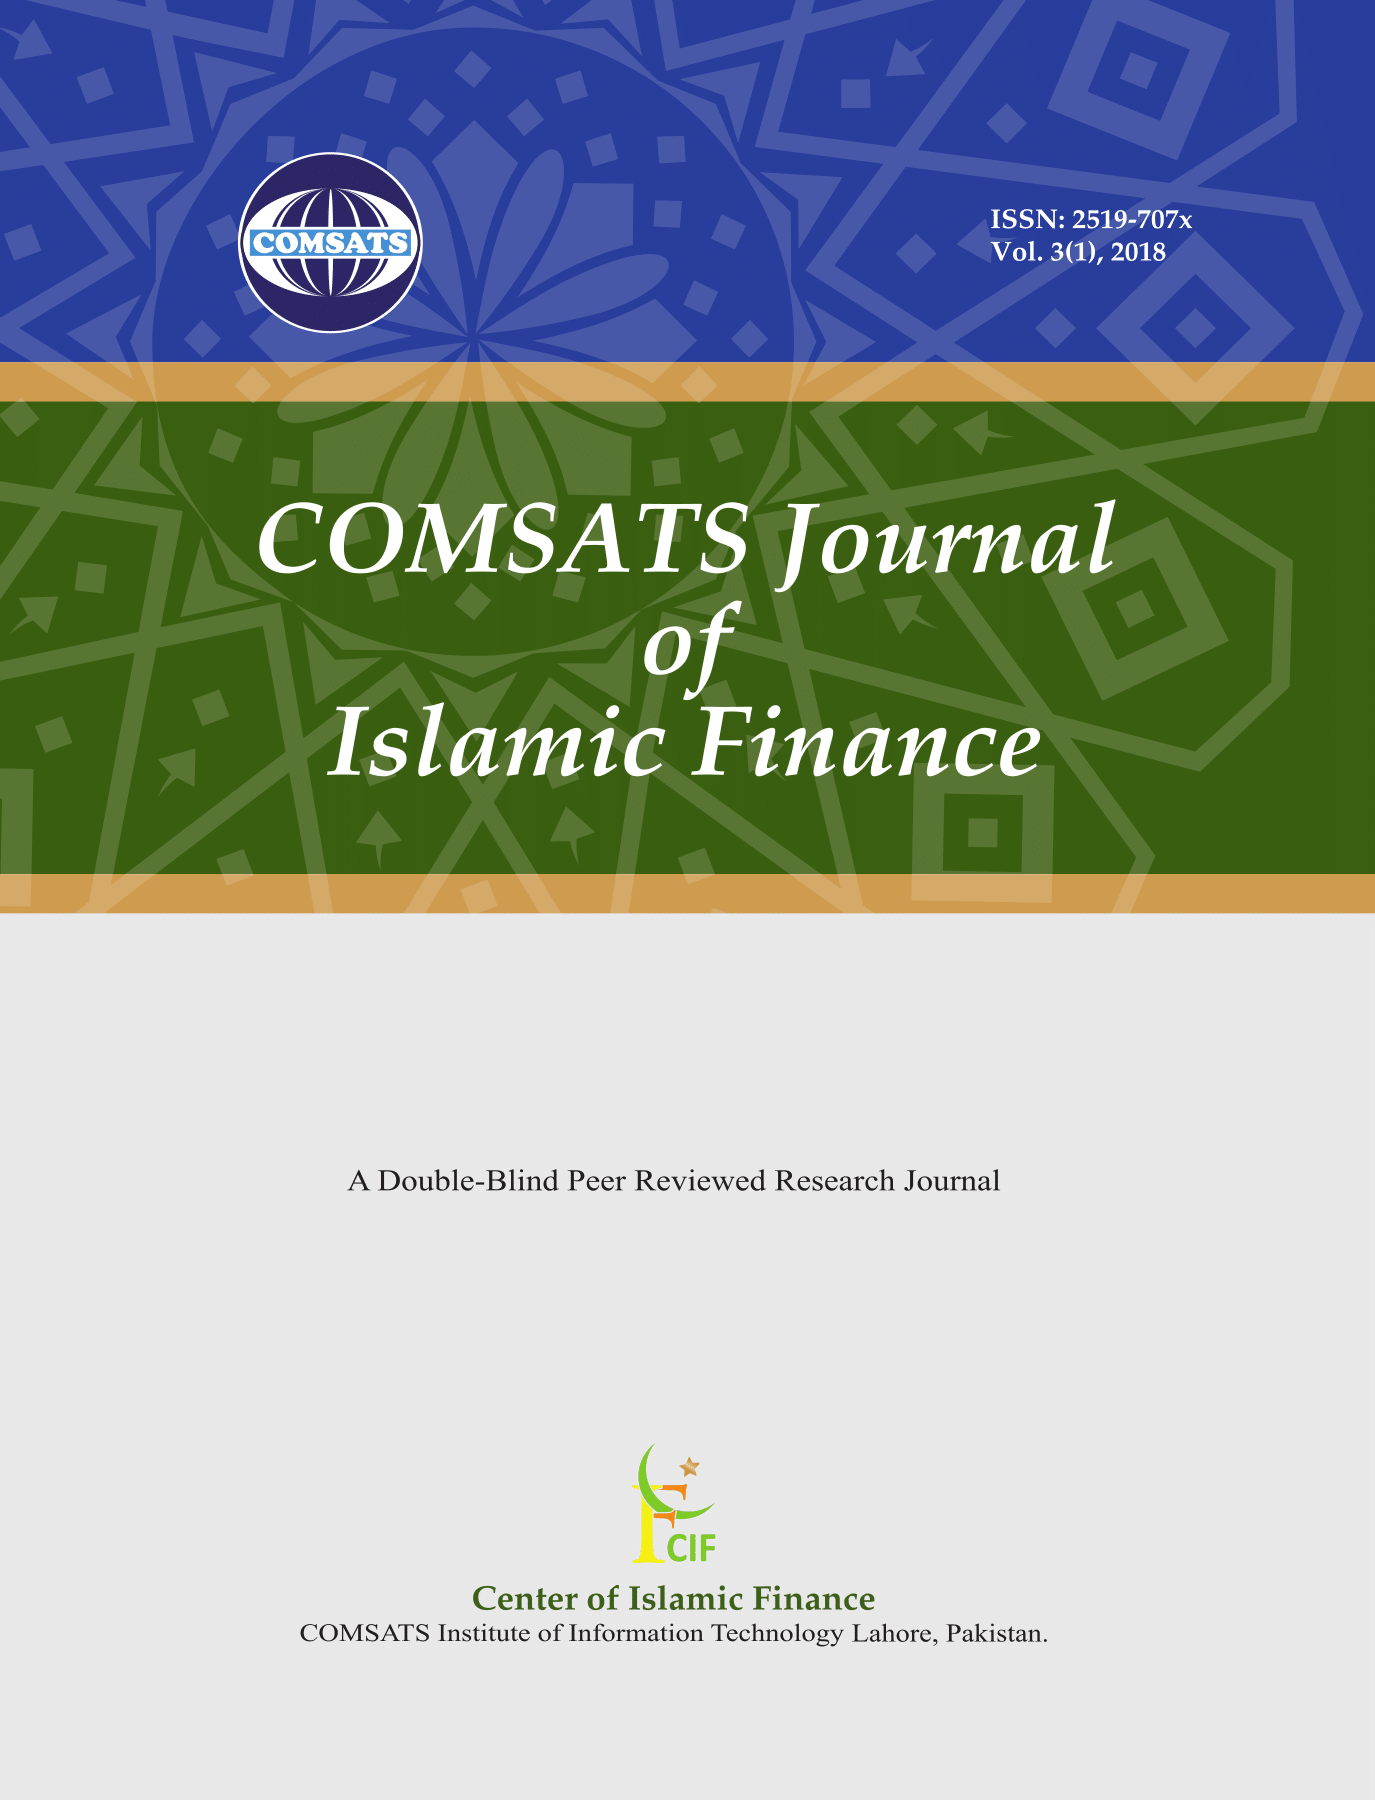 COMSATS Journal of Islamic Finance (CJIF)